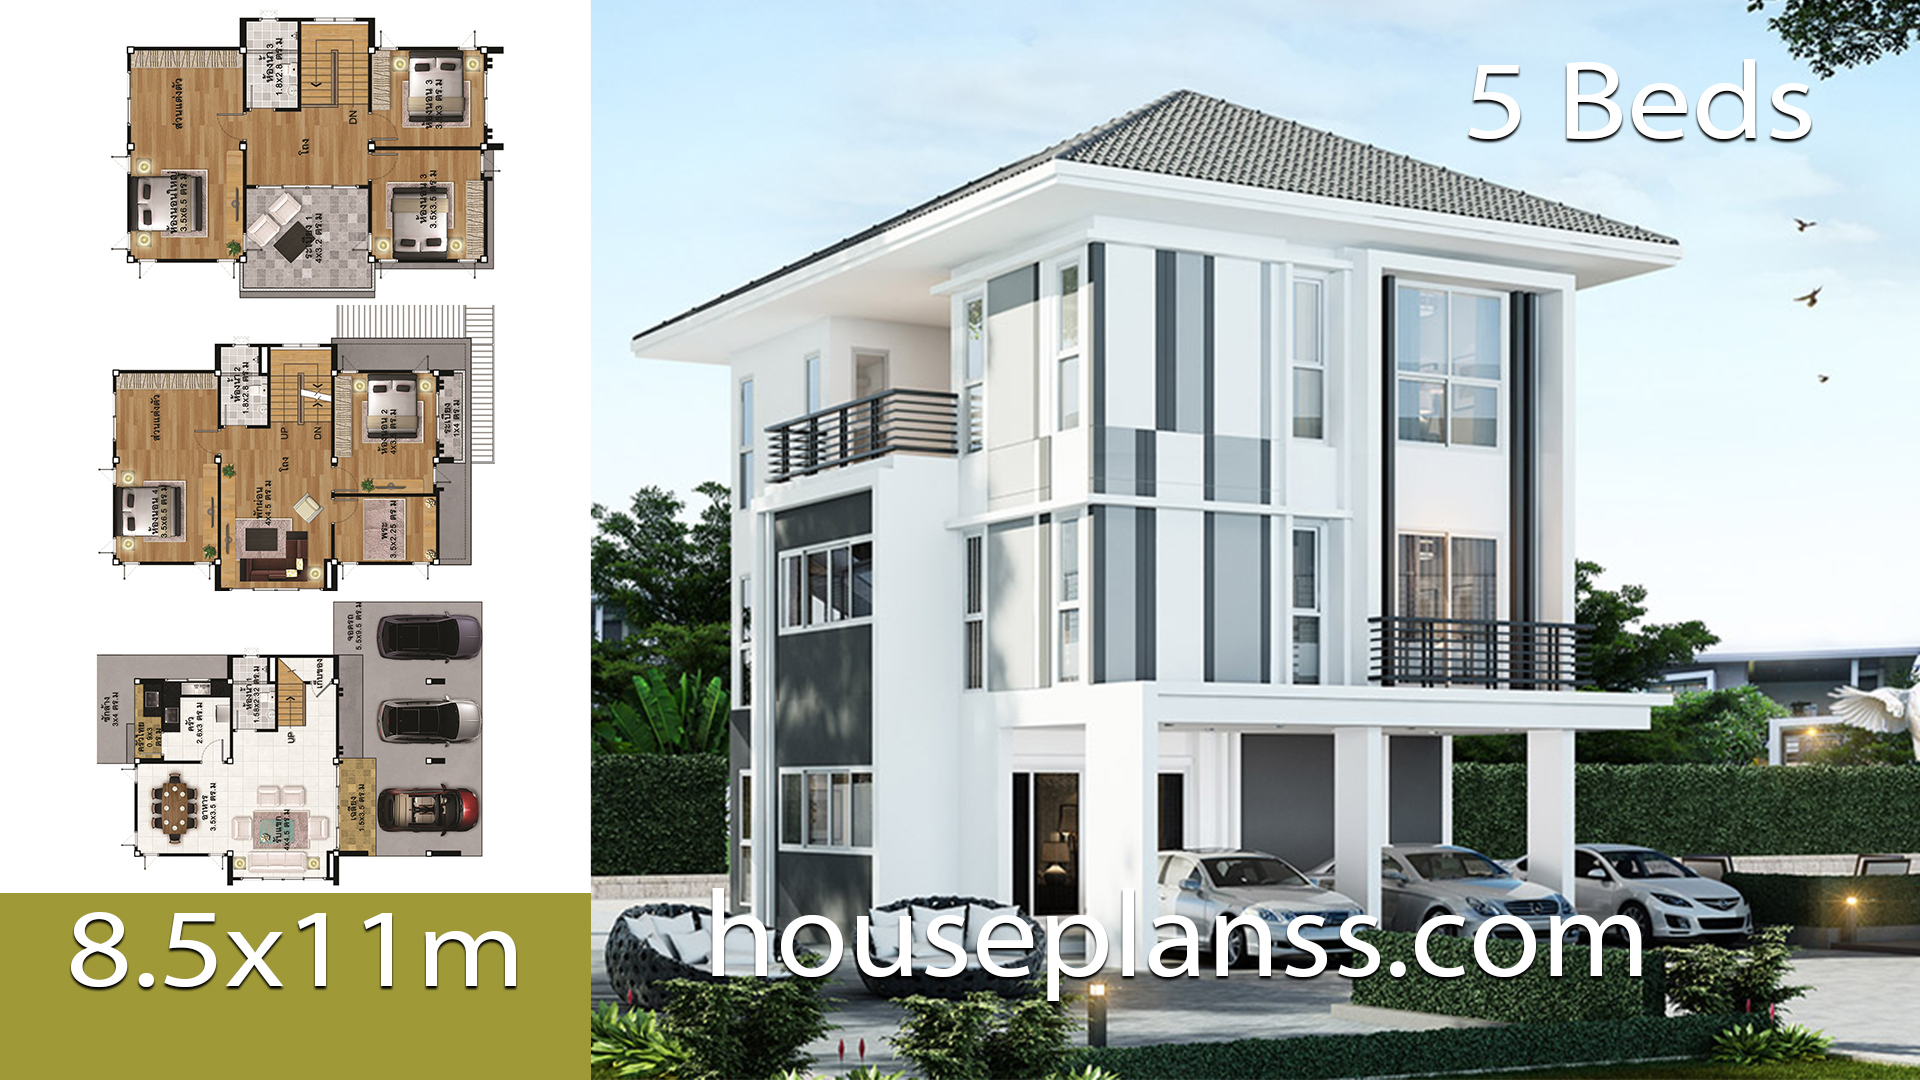 House Plans design Idea 8.5×11 with 5 Bedrooms